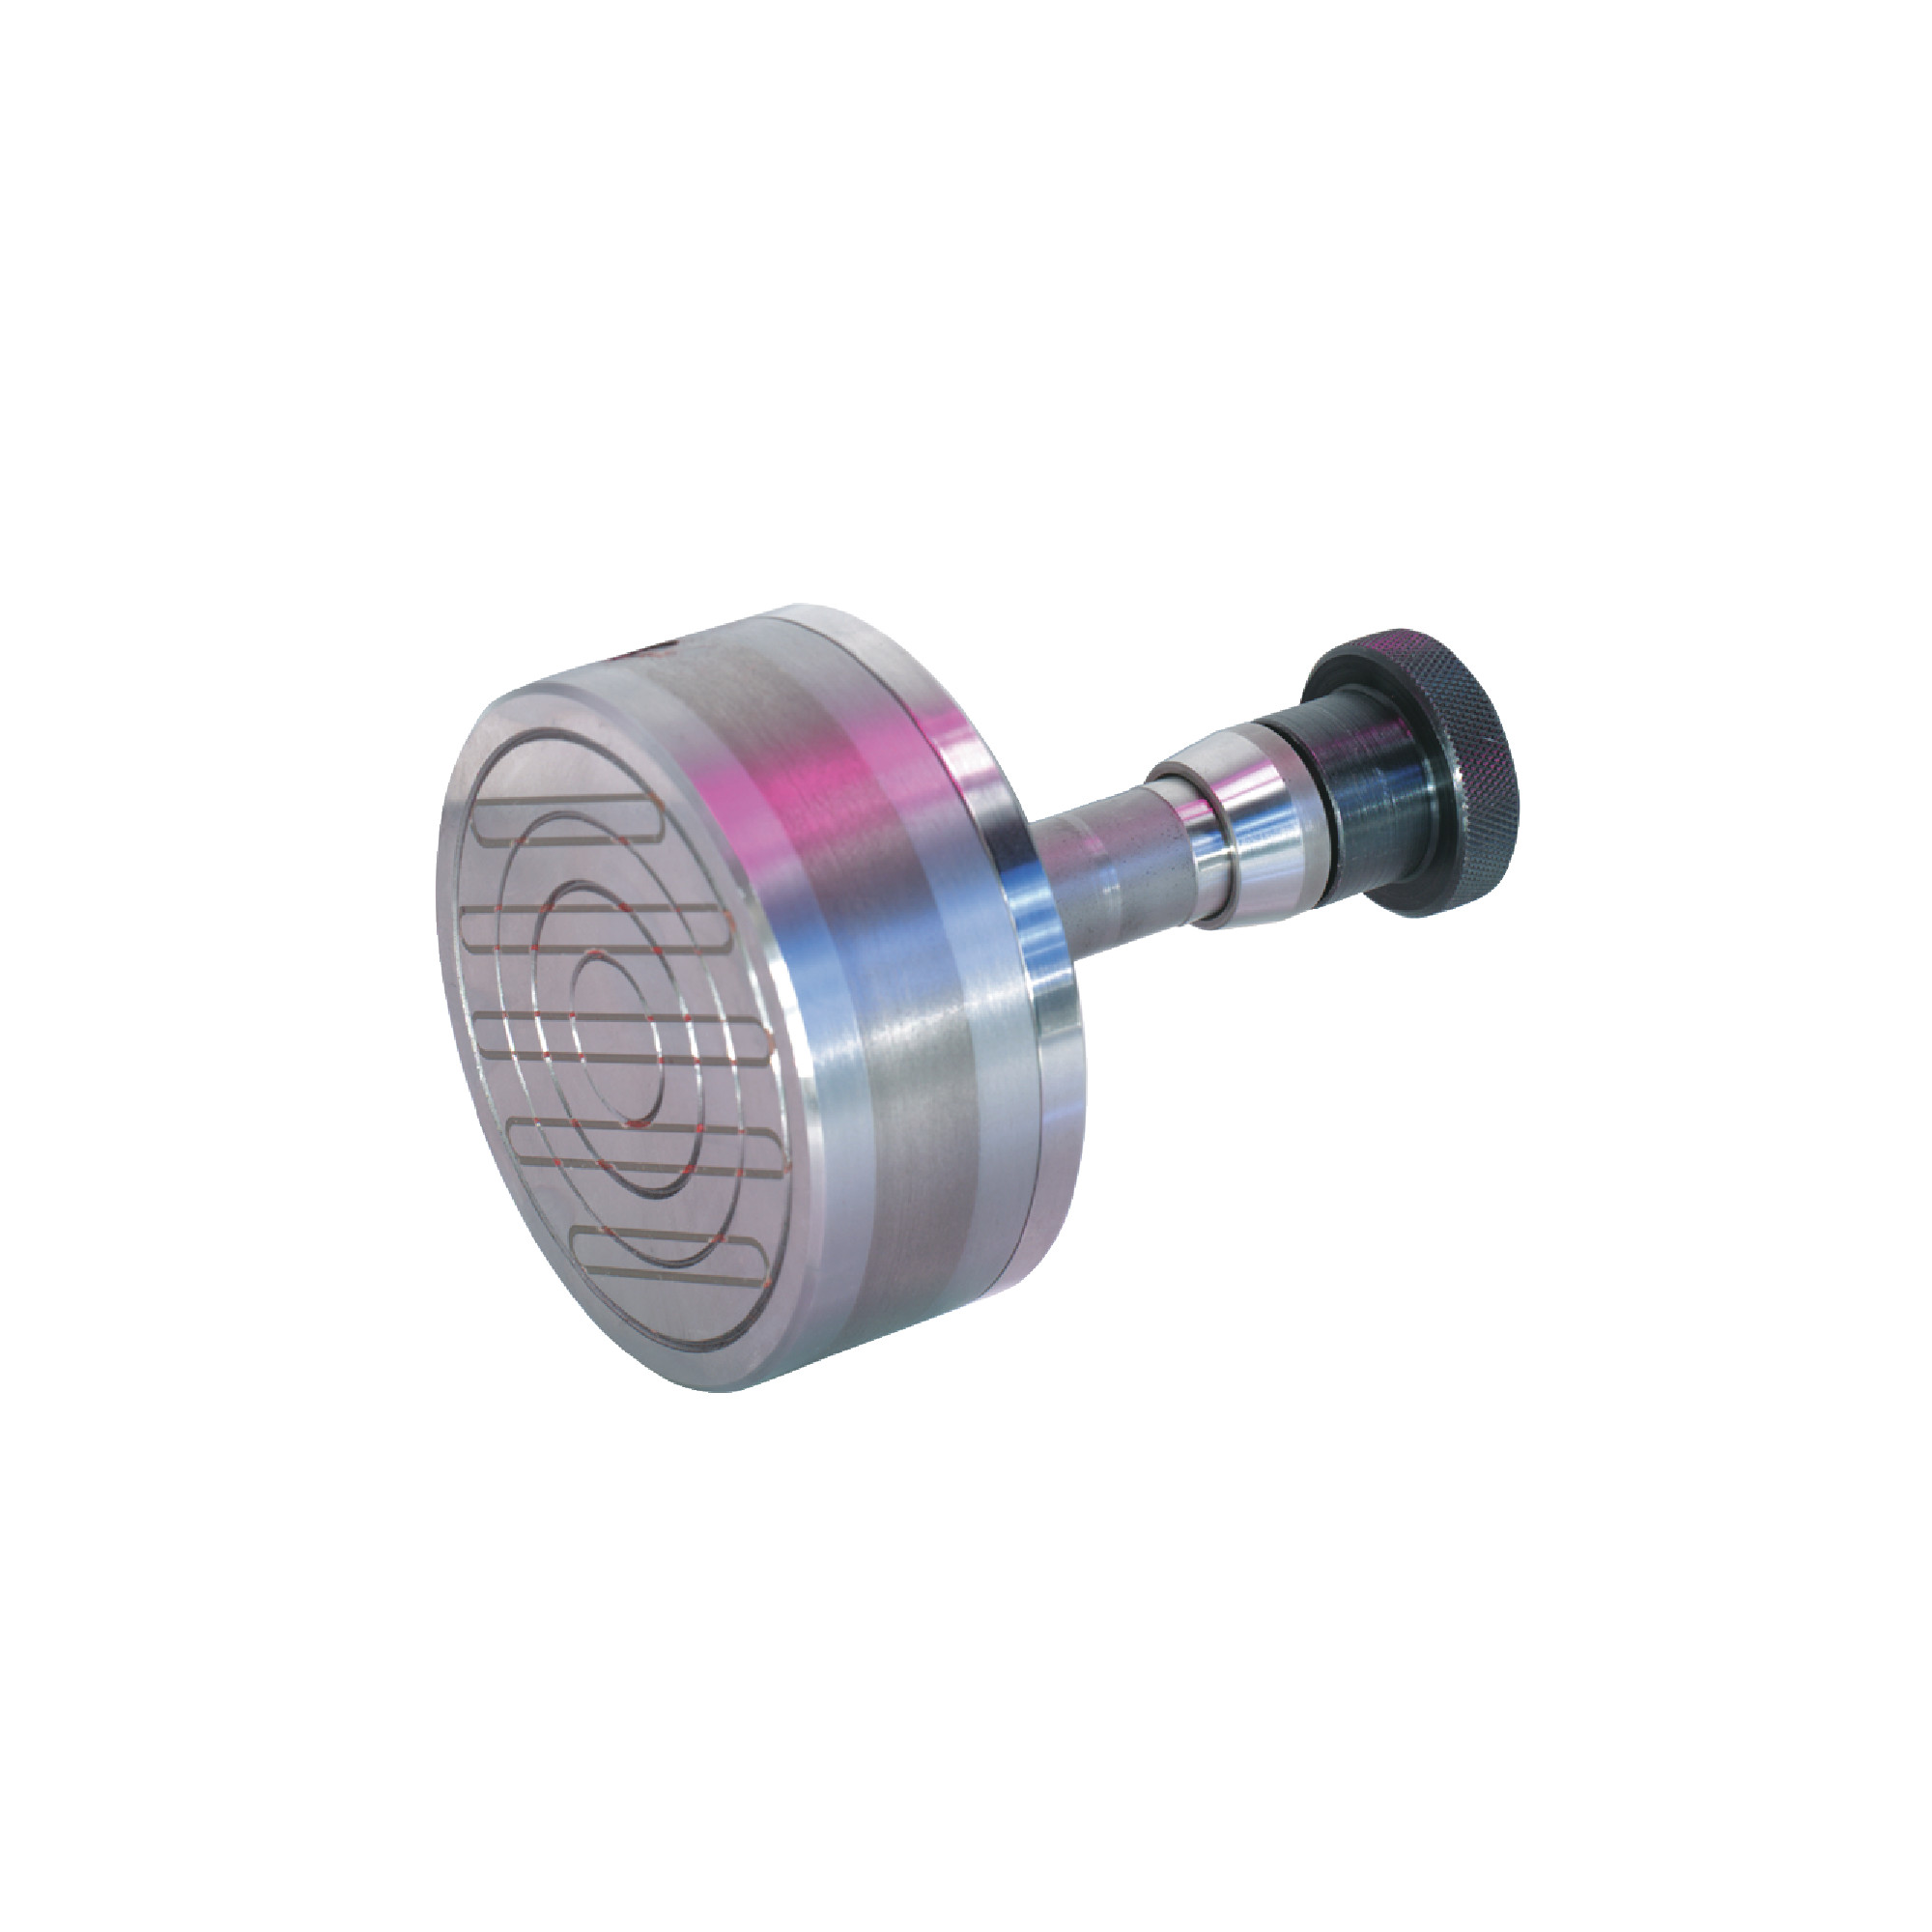 Universal Magnetic Chuck with 5C Adapter Shank